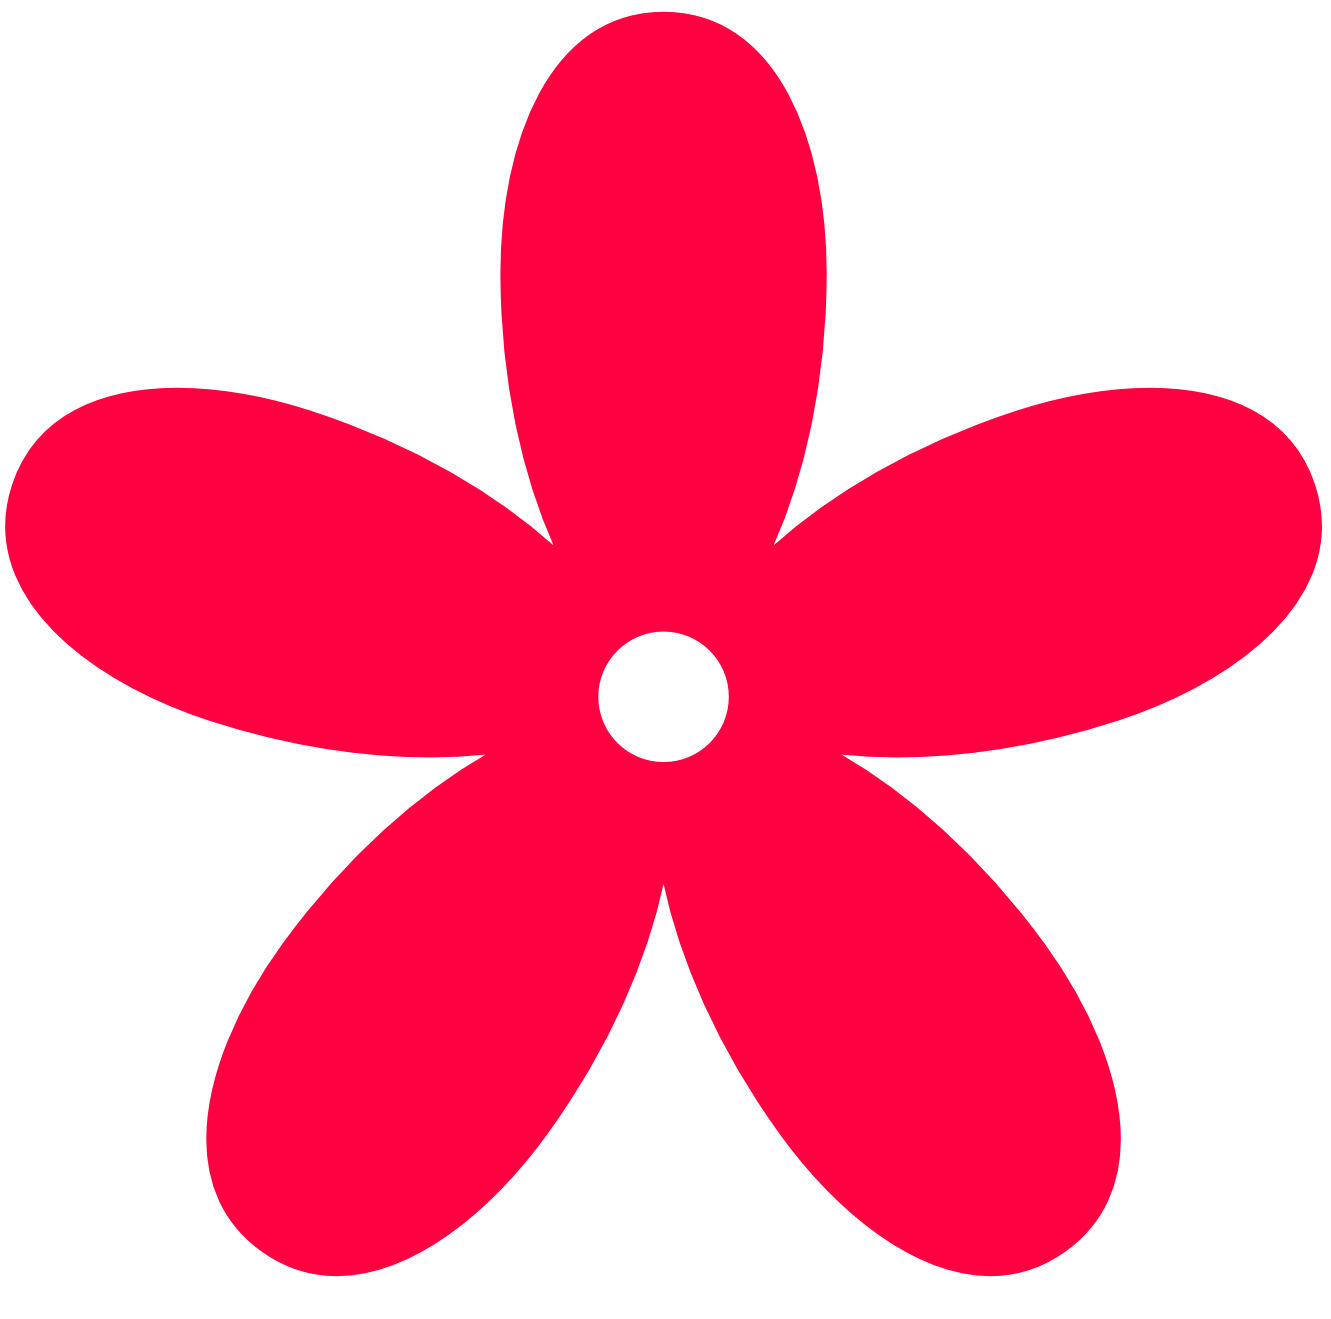 Clipart flower png png royalty free Clipart flower png - ClipartFest png royalty free